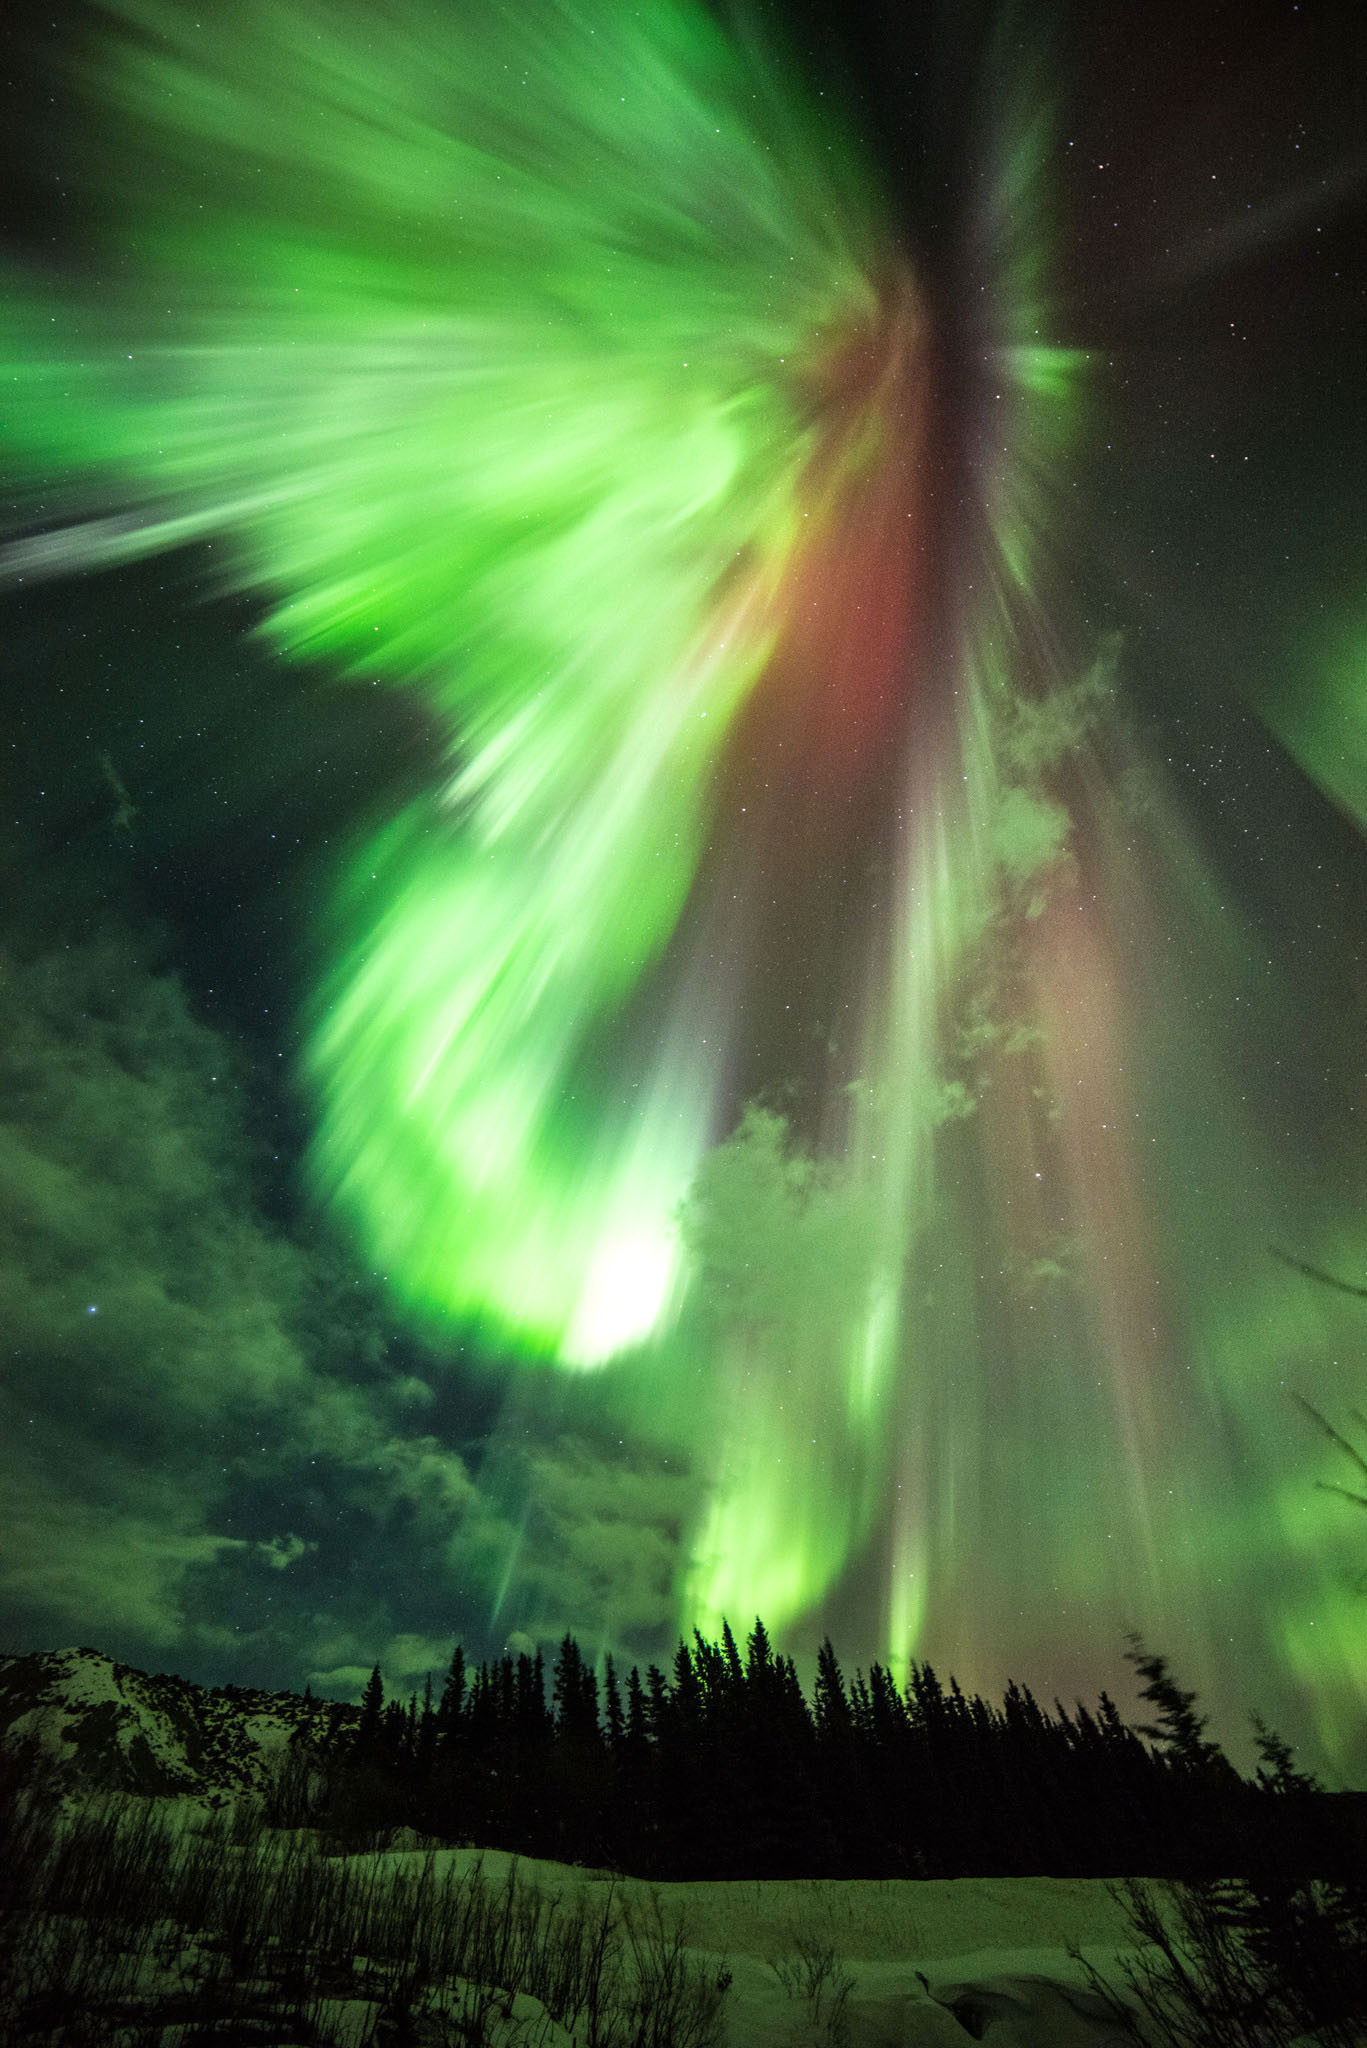 solar storm good or bad - photo #27